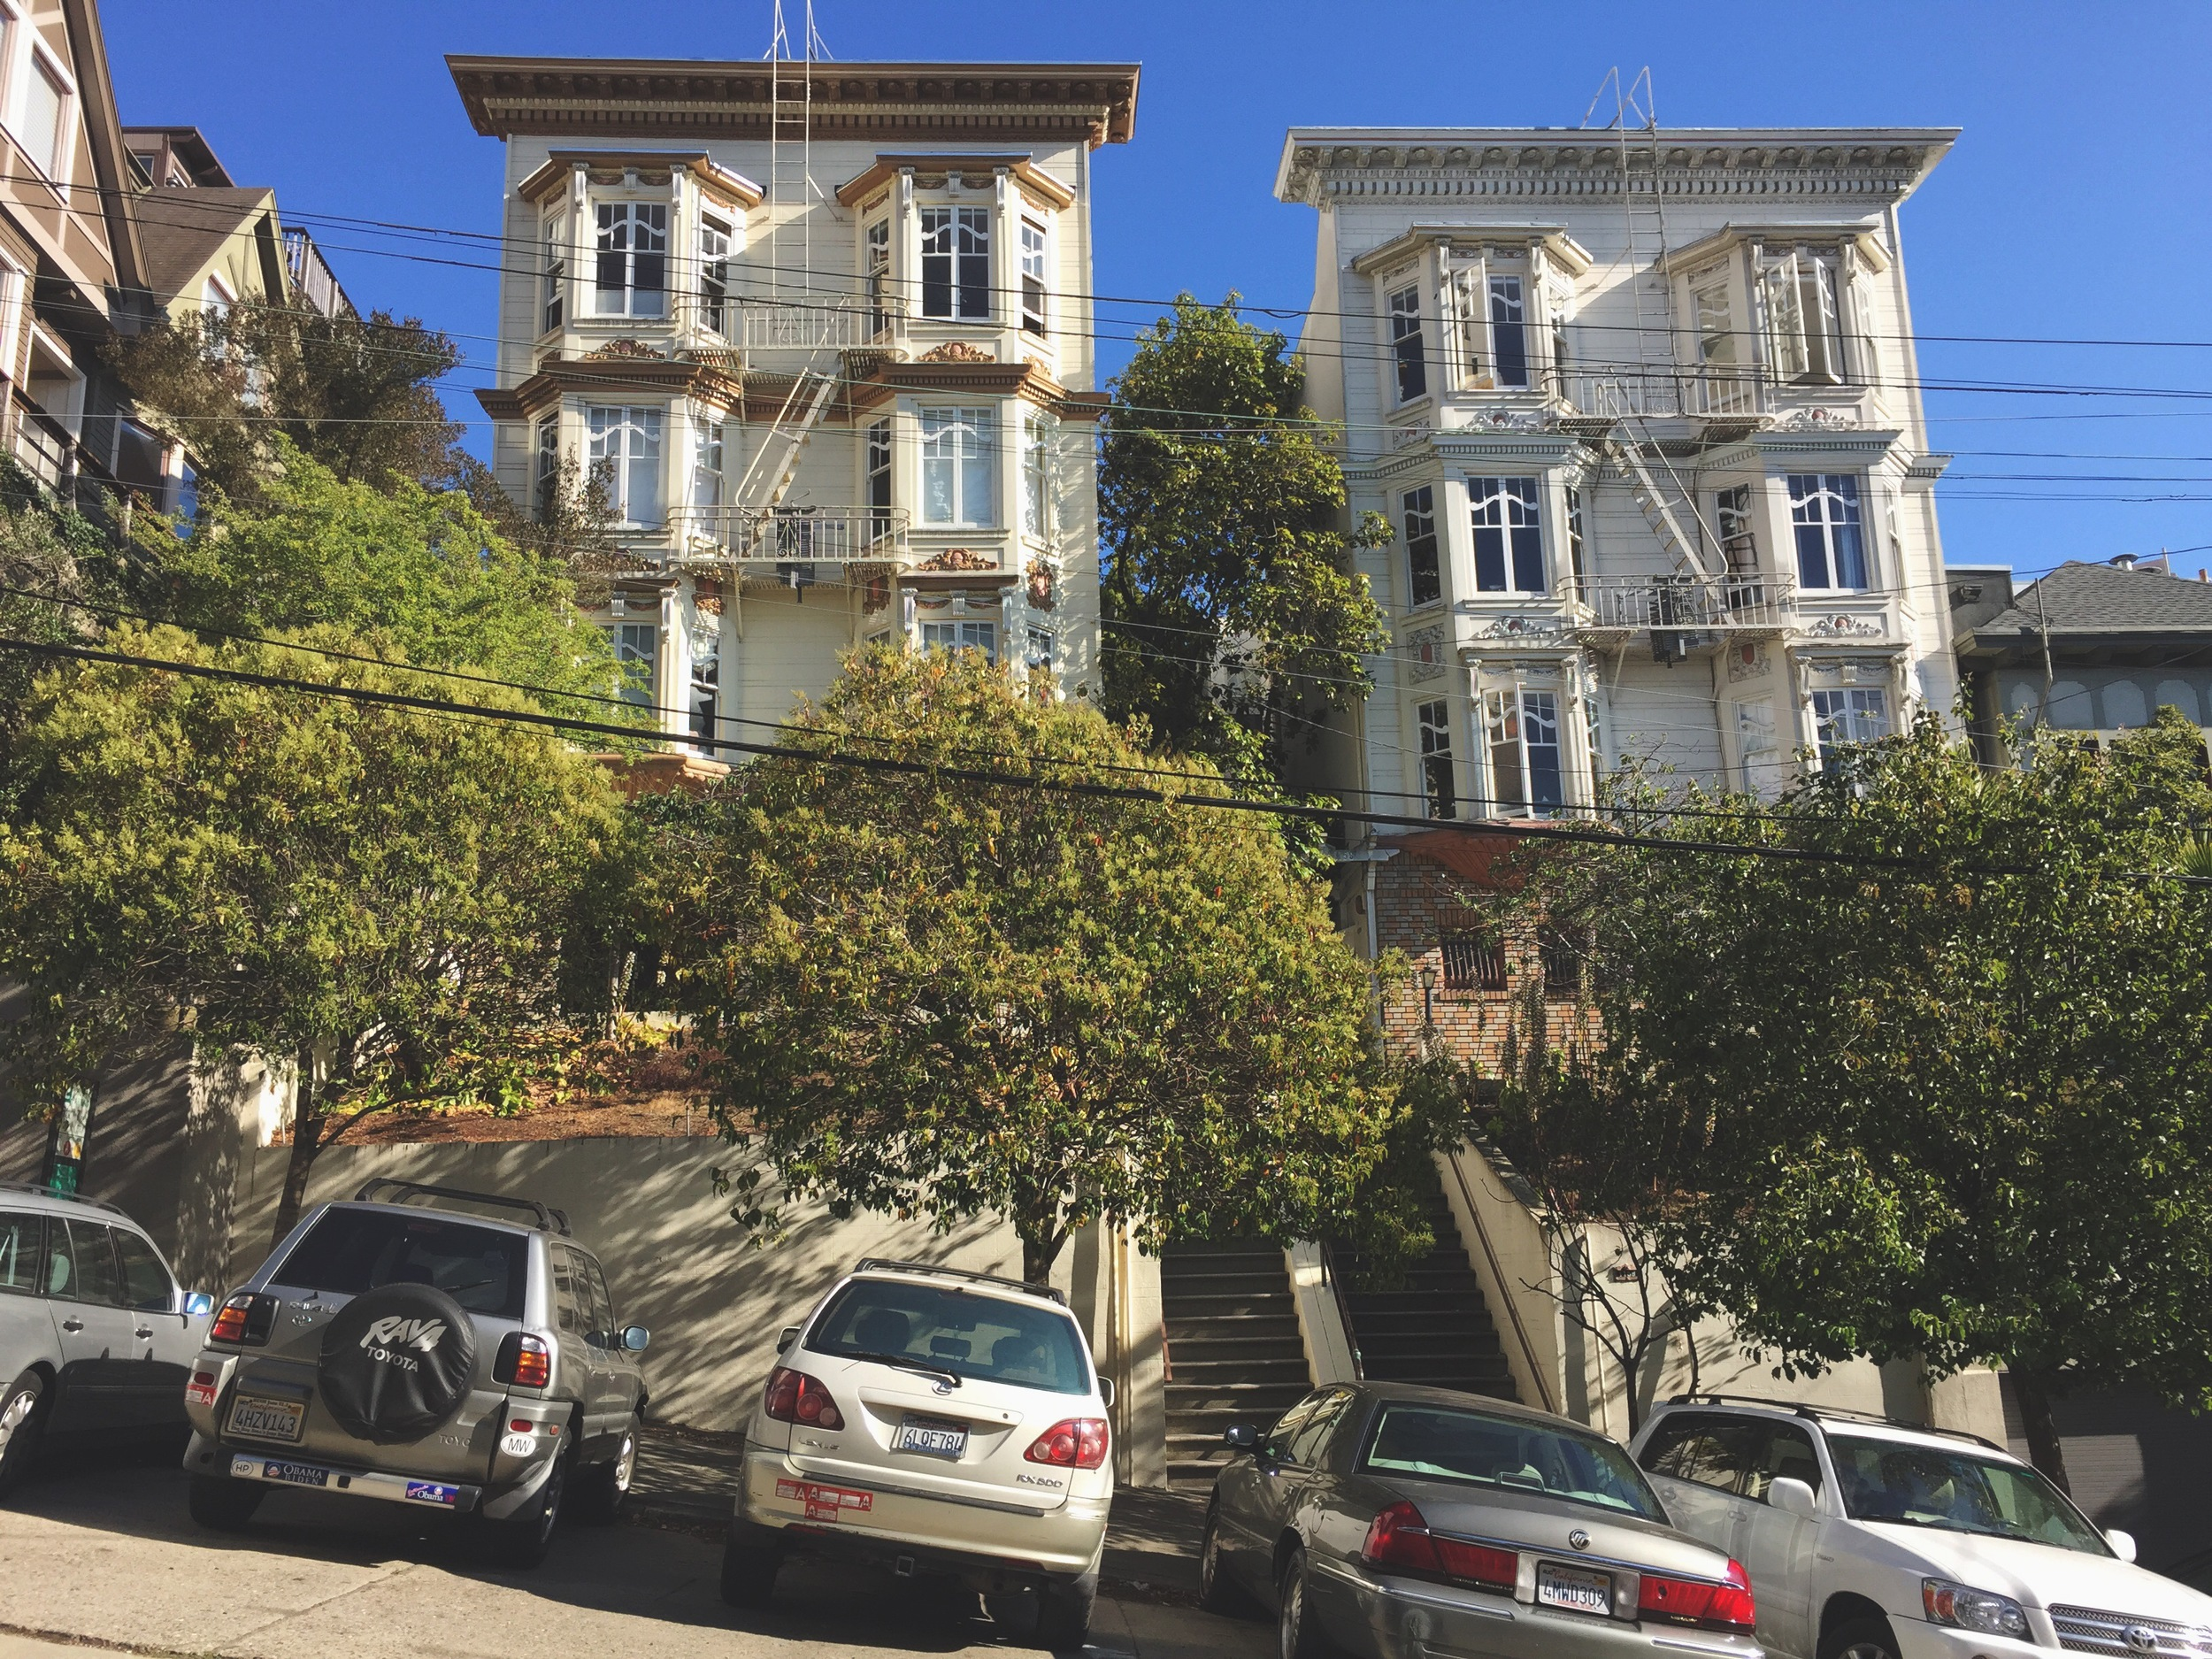 the houses of russian hill